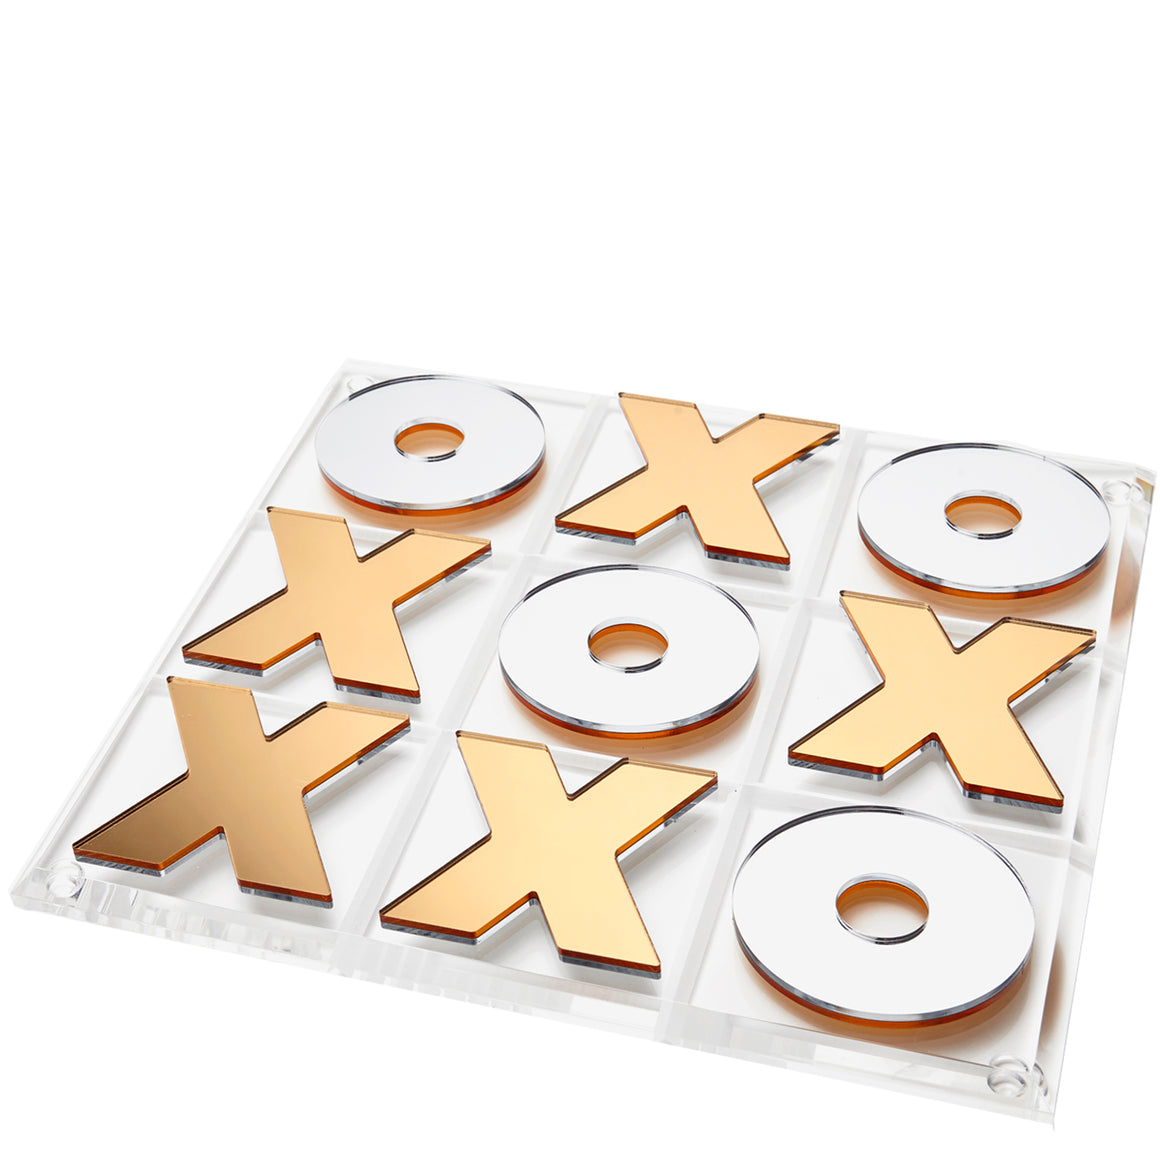 Gold / silver mirror reversible tic tac toe